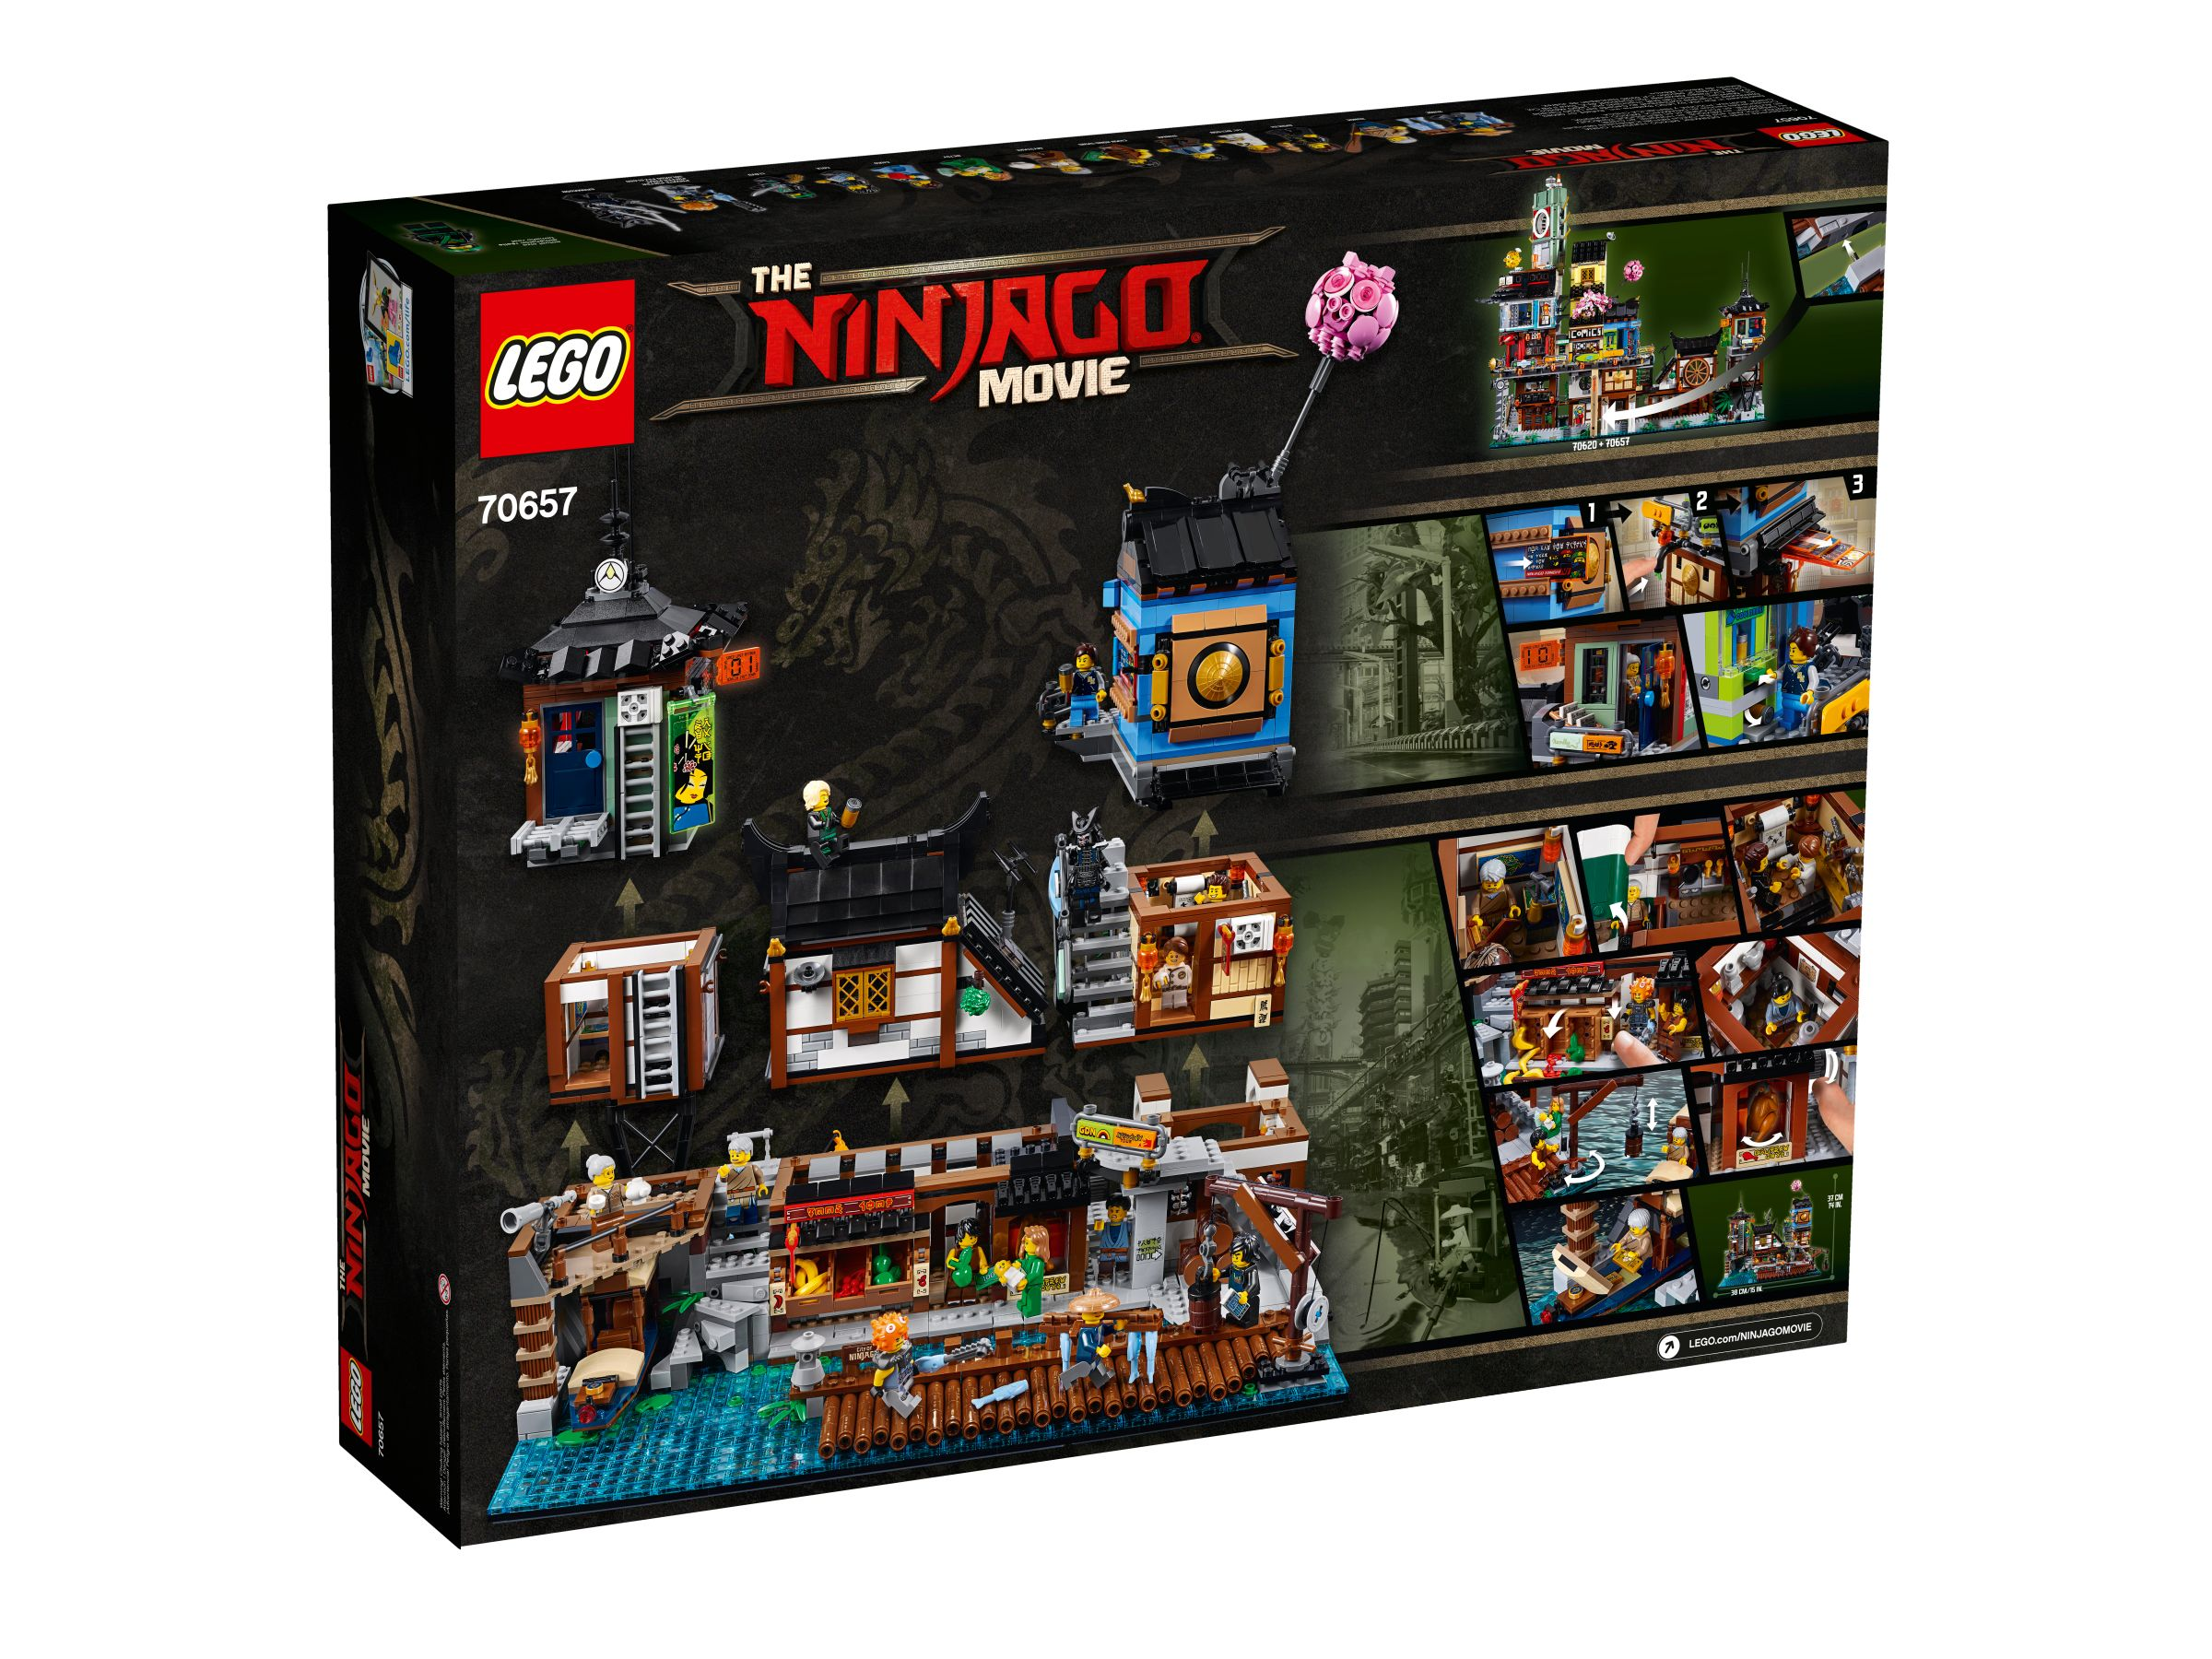 LEGO The LEGO Ninjago Movie 70657 Ninjago City Hafen LEGO_70657_alt4.jpg